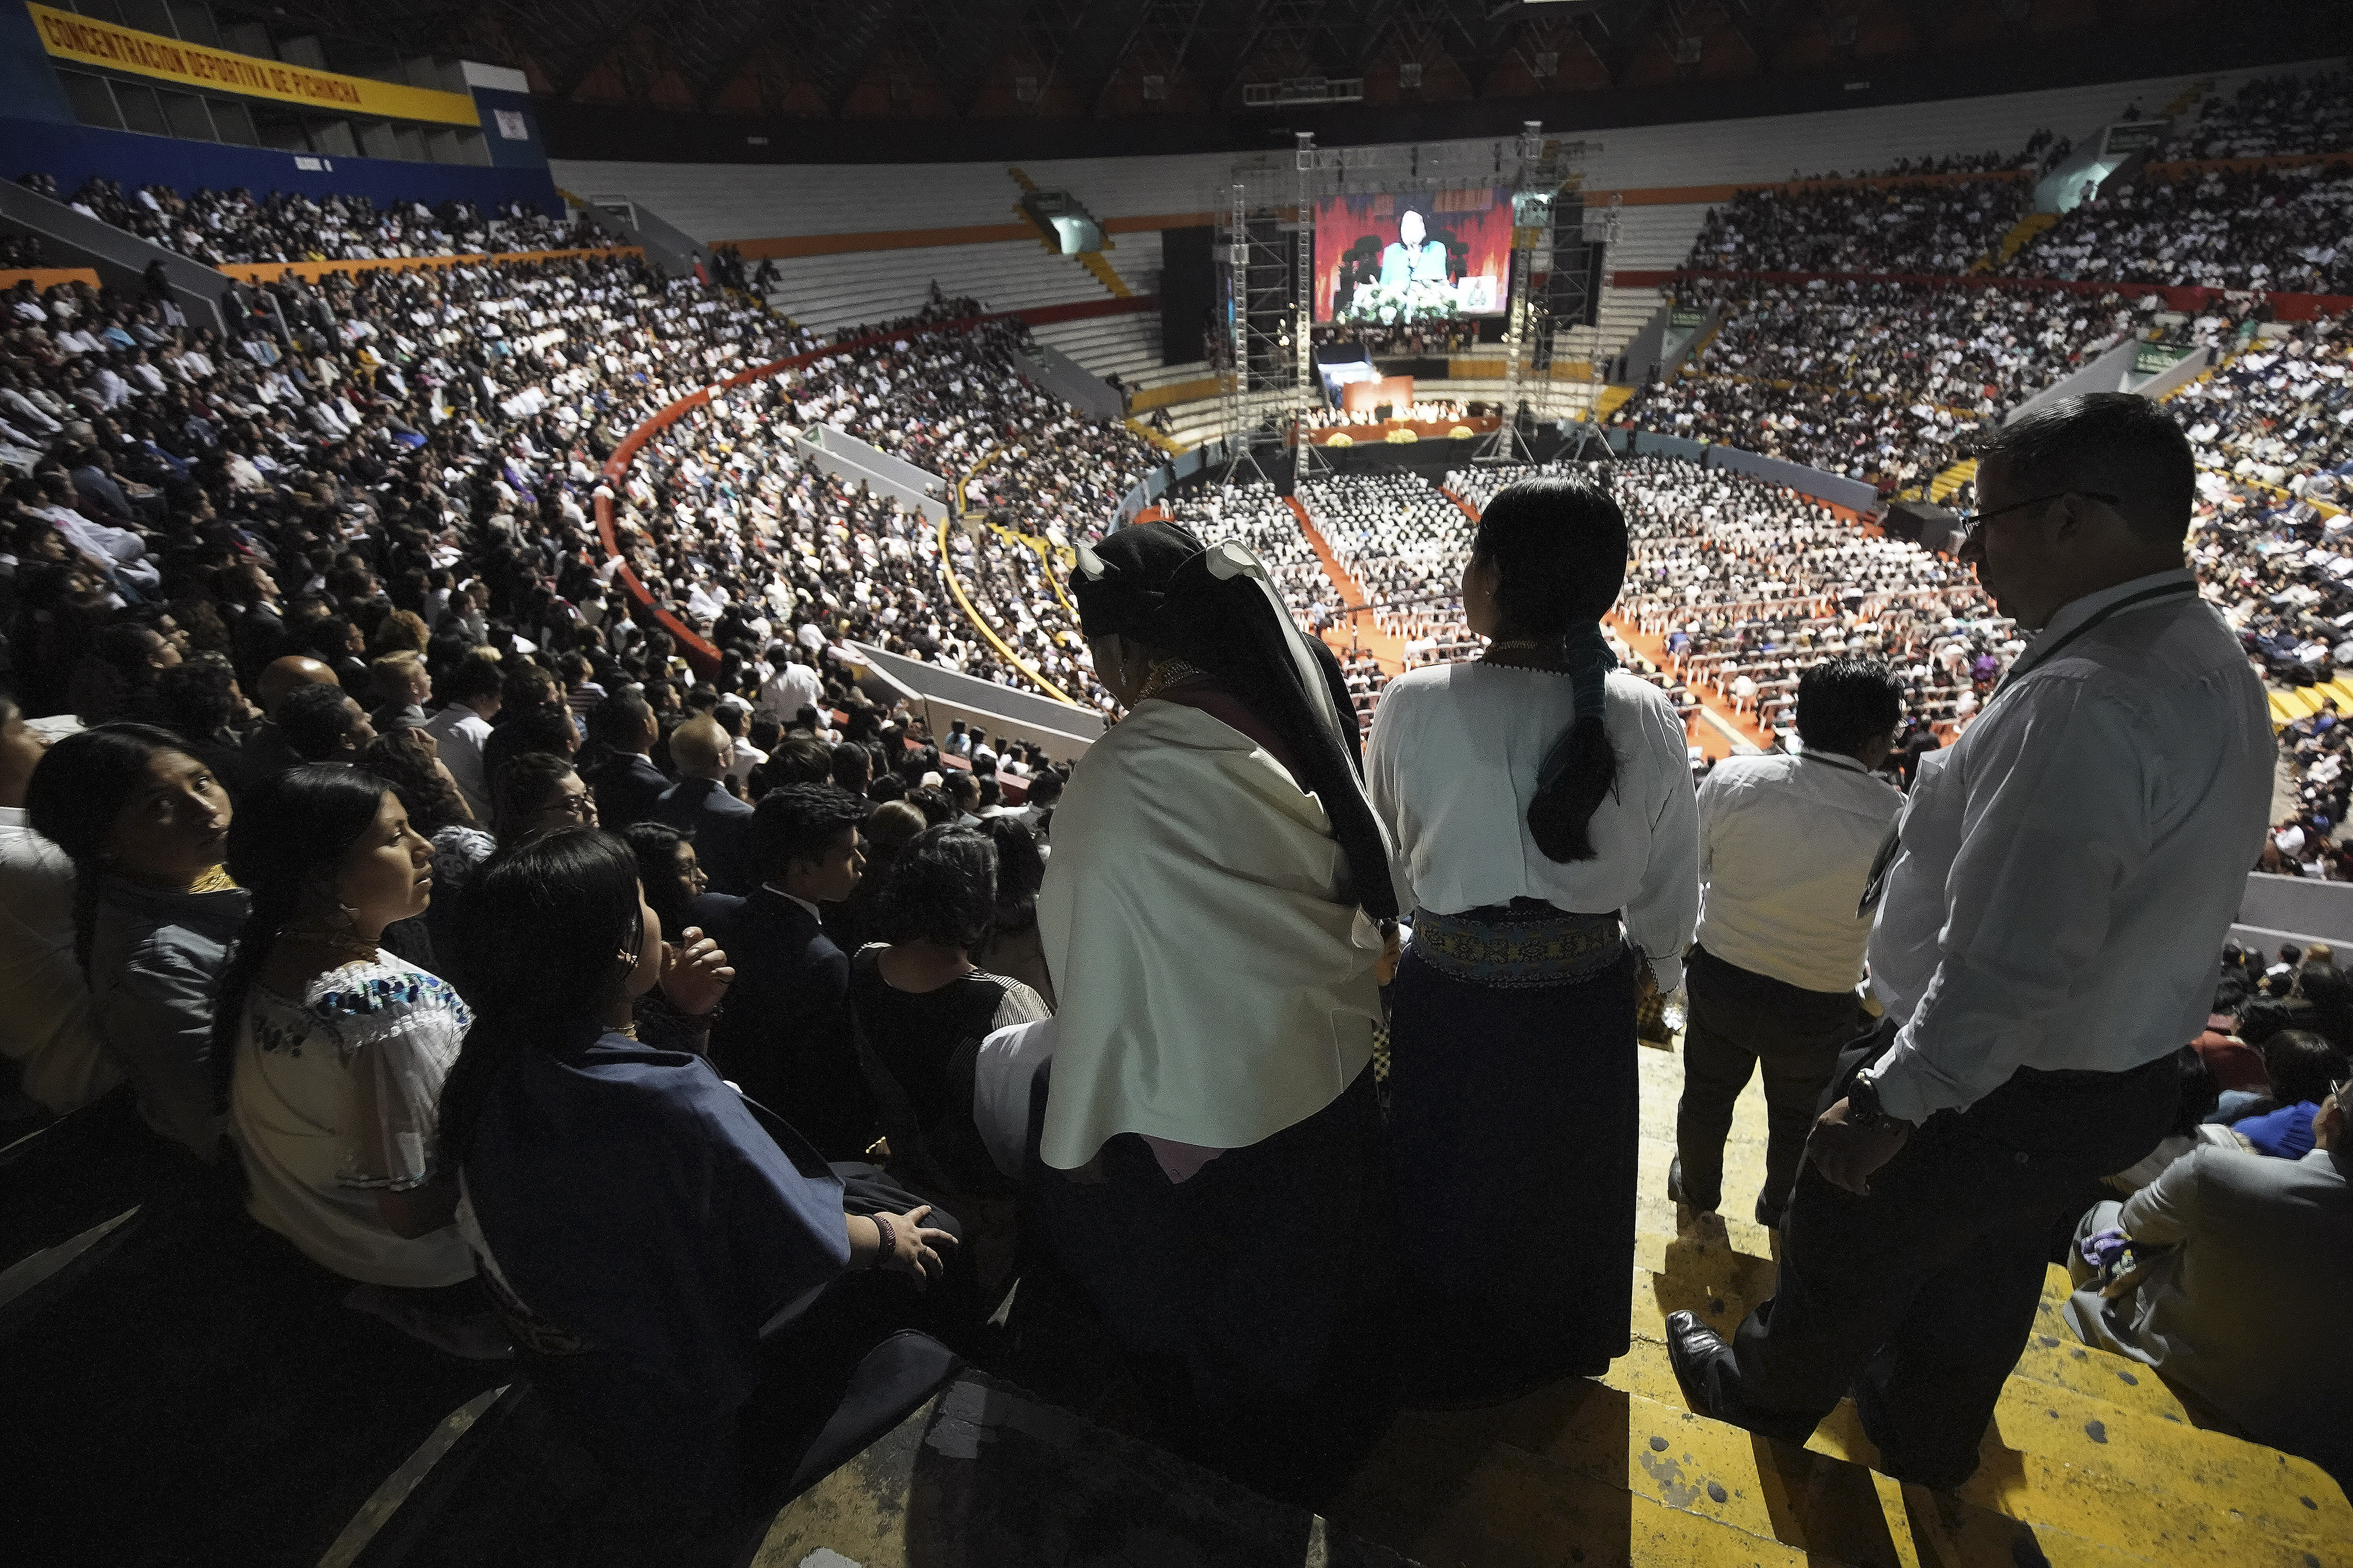 Attendees enter the arena during a devotional in Quito, Ecuador, on Monday, Aug. 26, 2019.